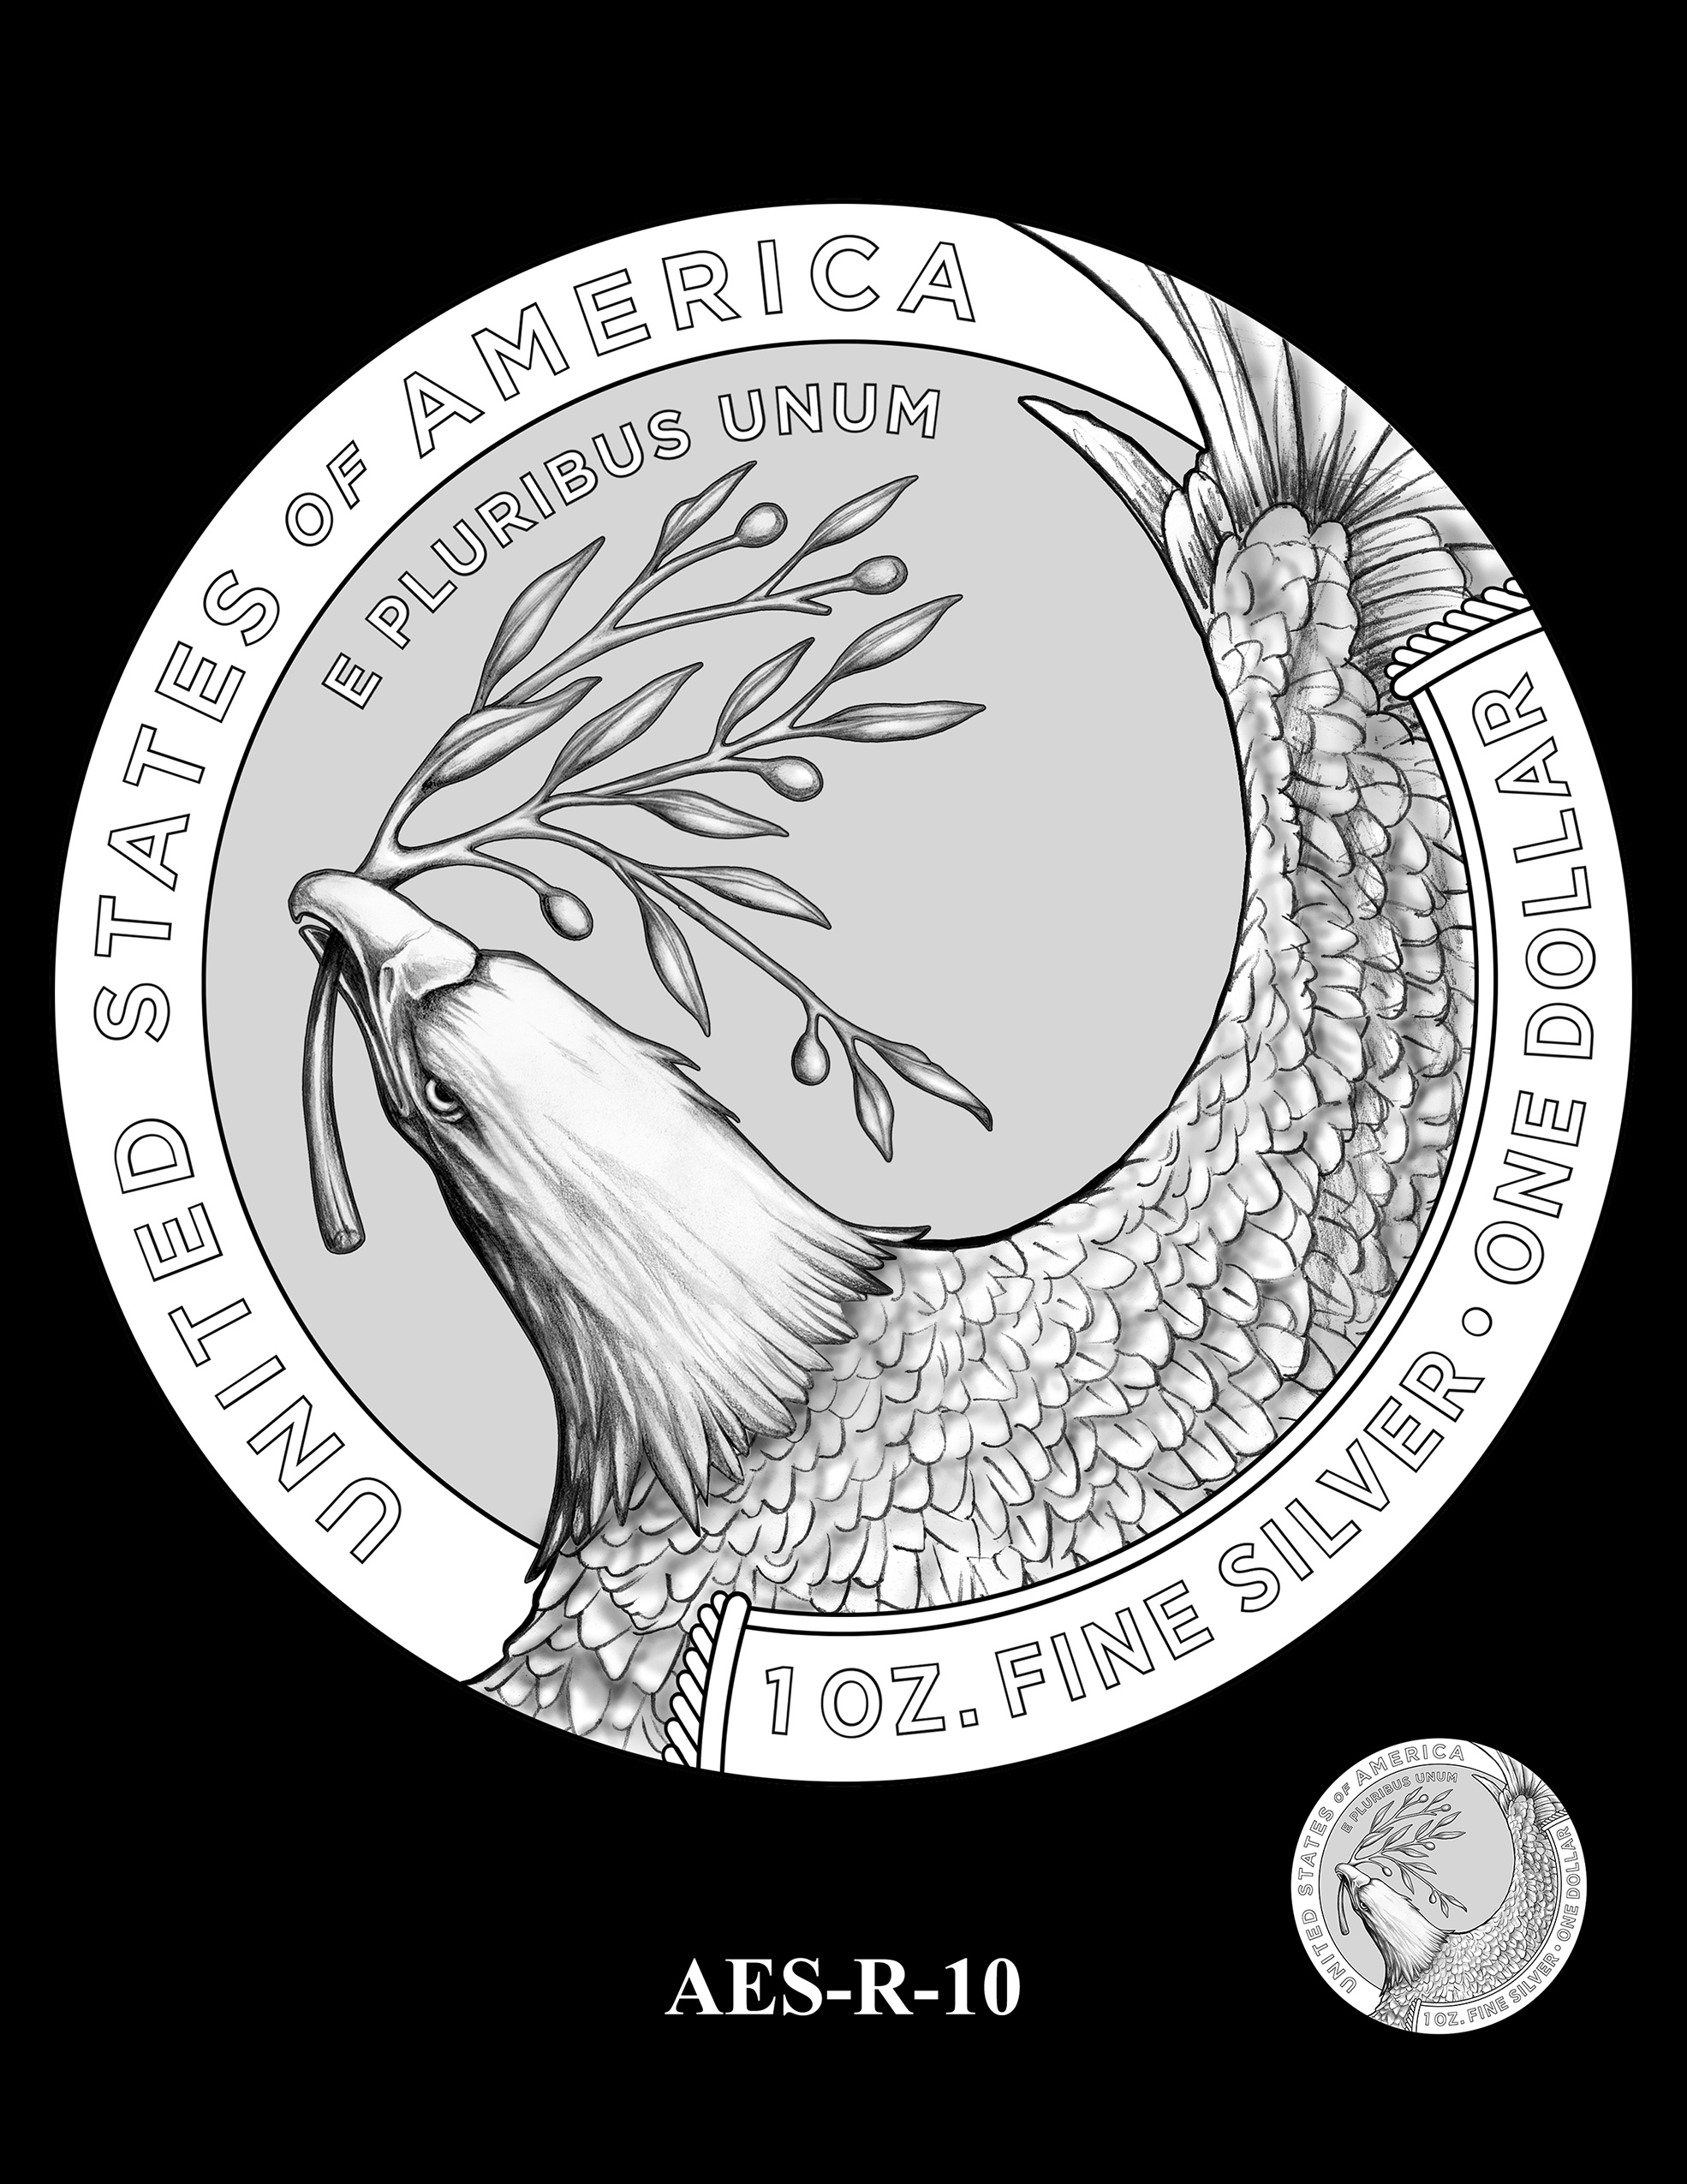 AES-R-10 -- American Eagle Proof and Bullion Silver Coin - Reverse